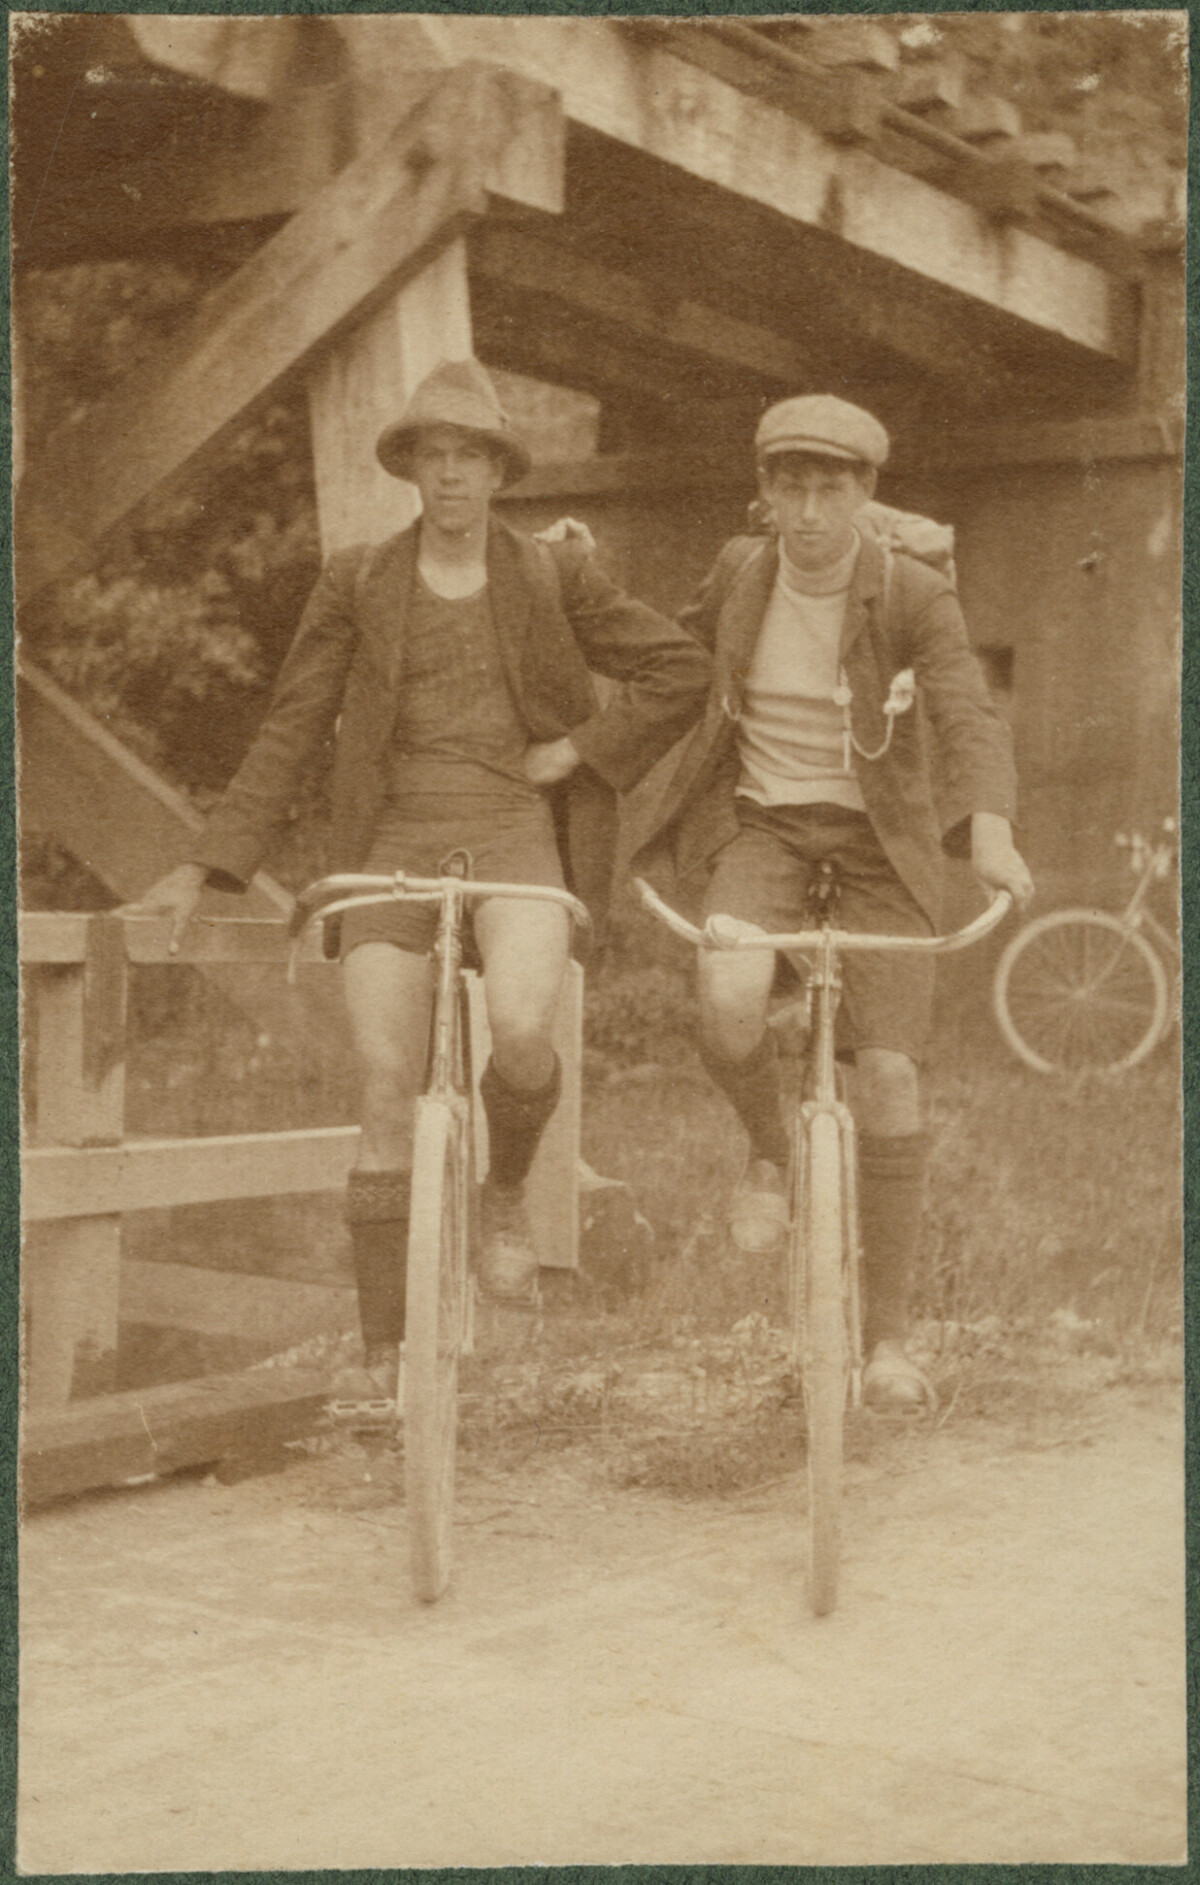 Two cyclists. 1900s. Christchurch City Libraries Photo Hunt. In copyright. CCL-PH19-0040